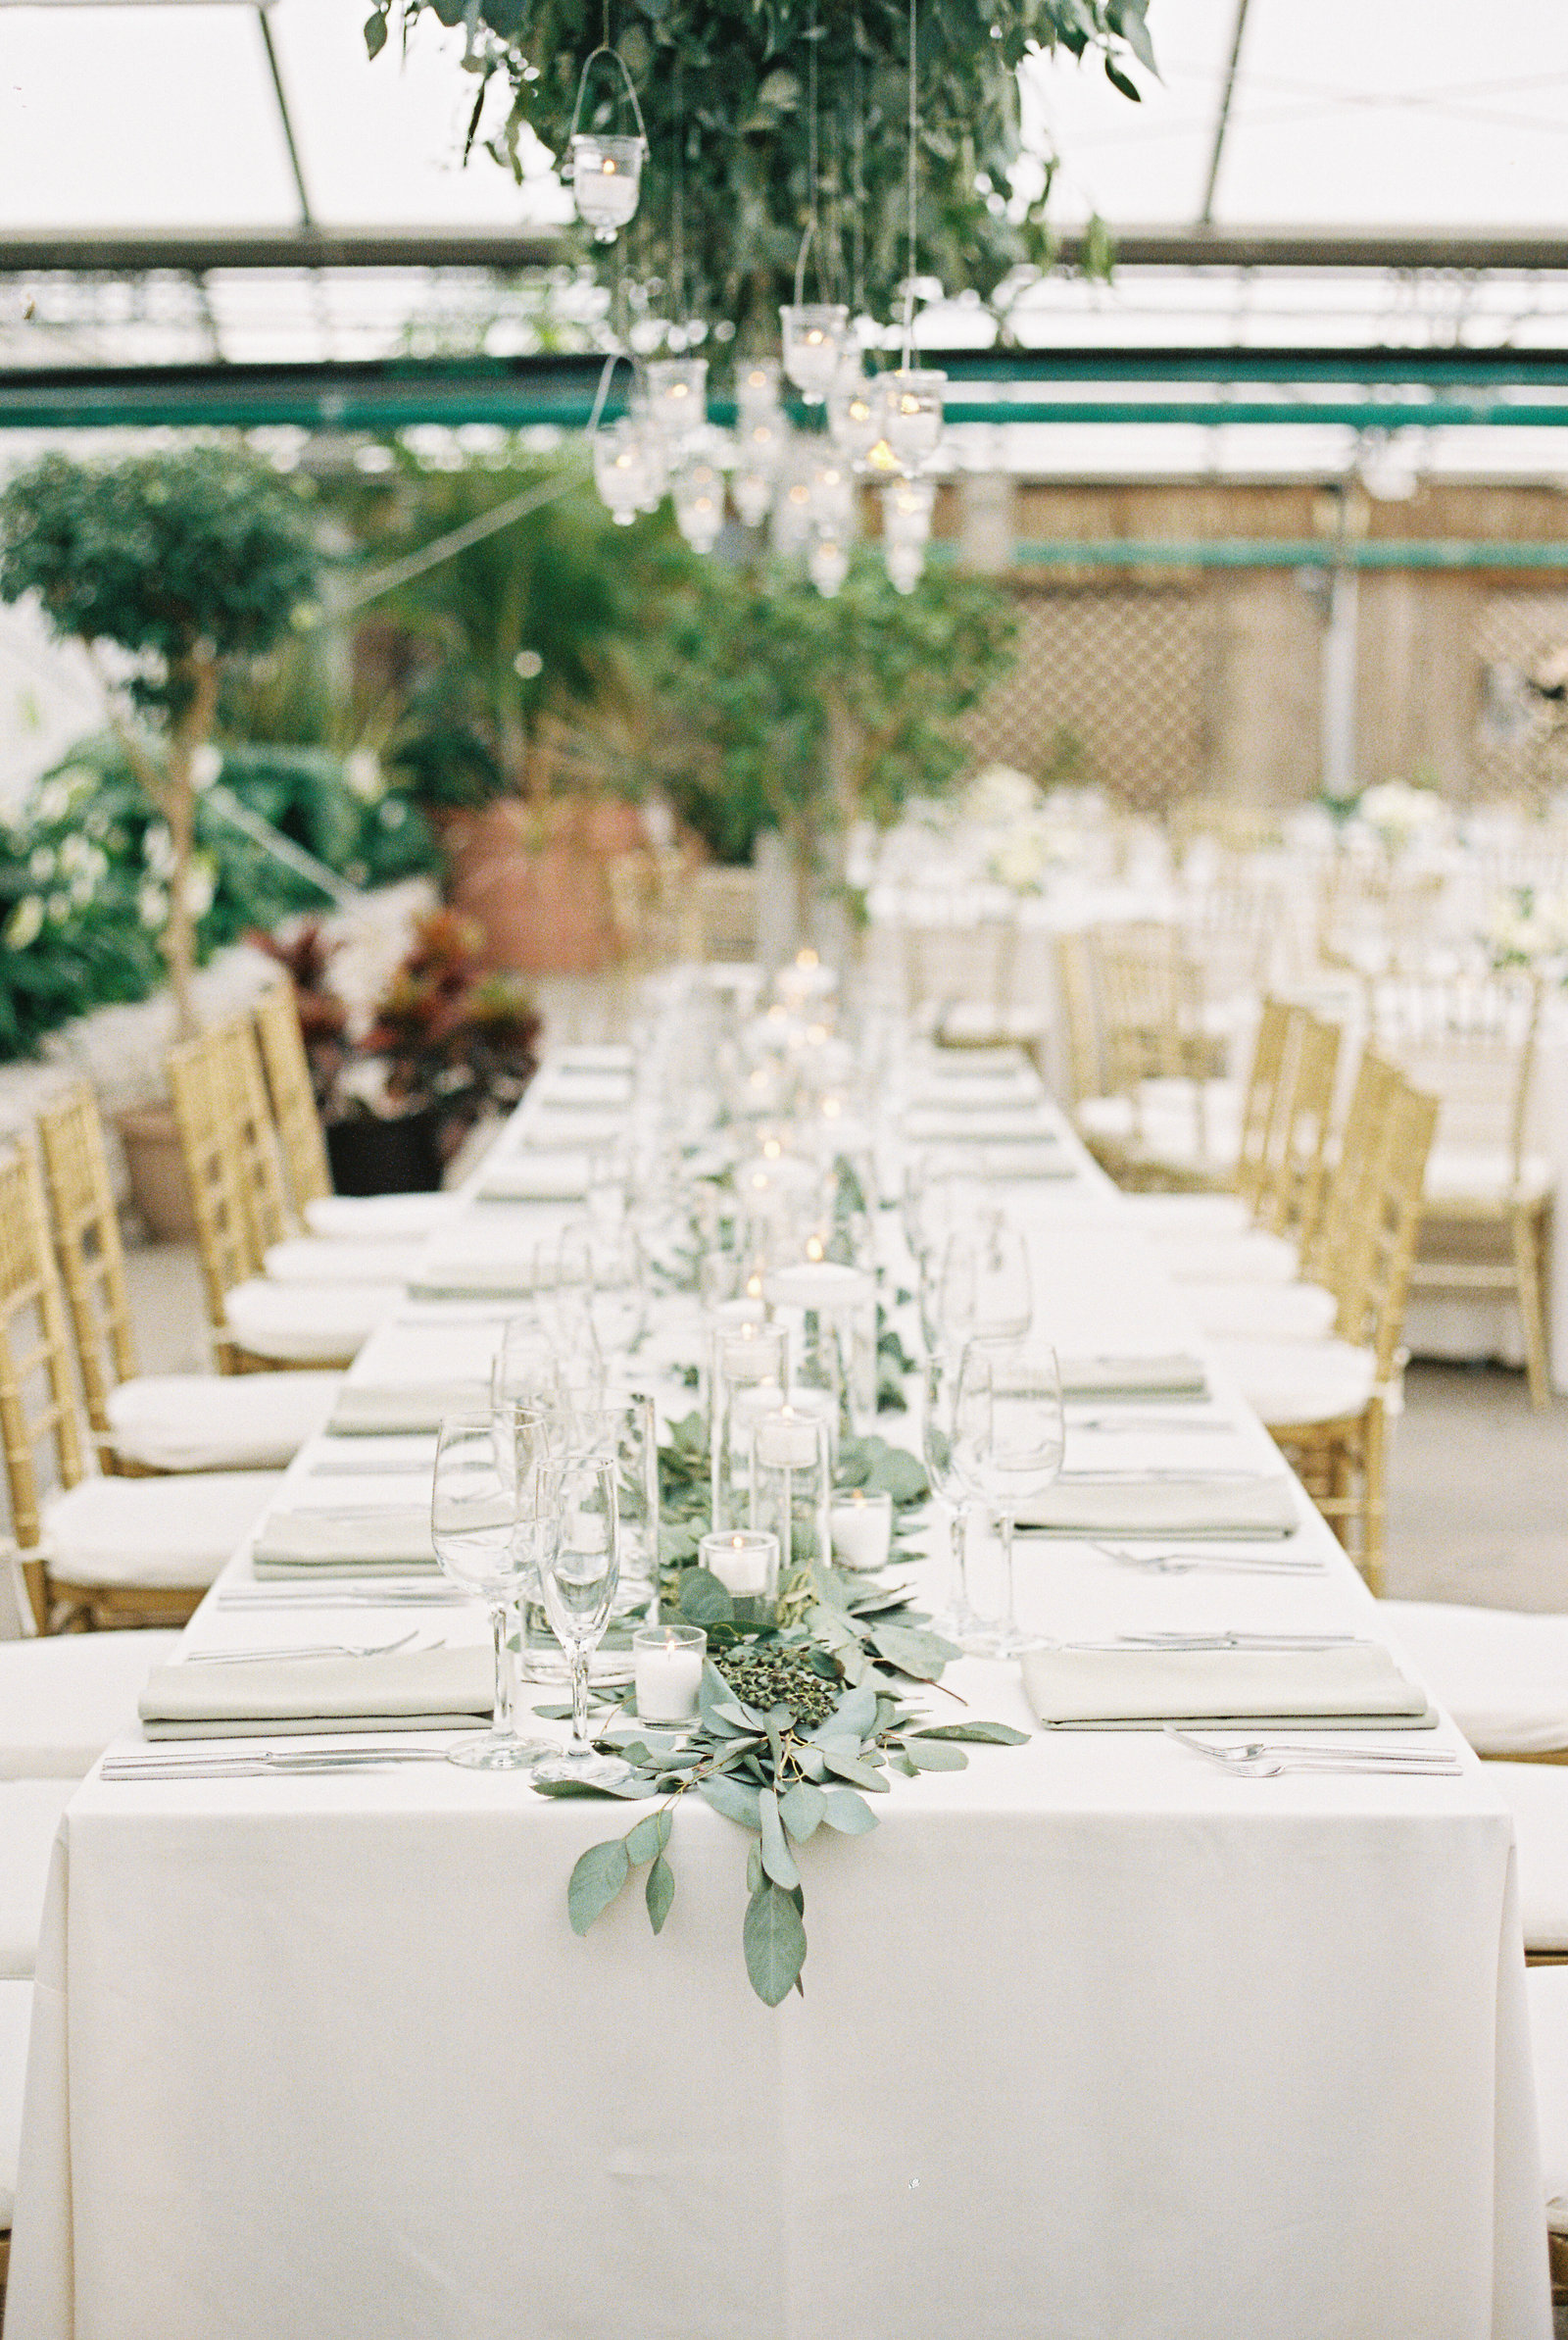 White and green spring wedding at the Horticultural Center in Philadelphia